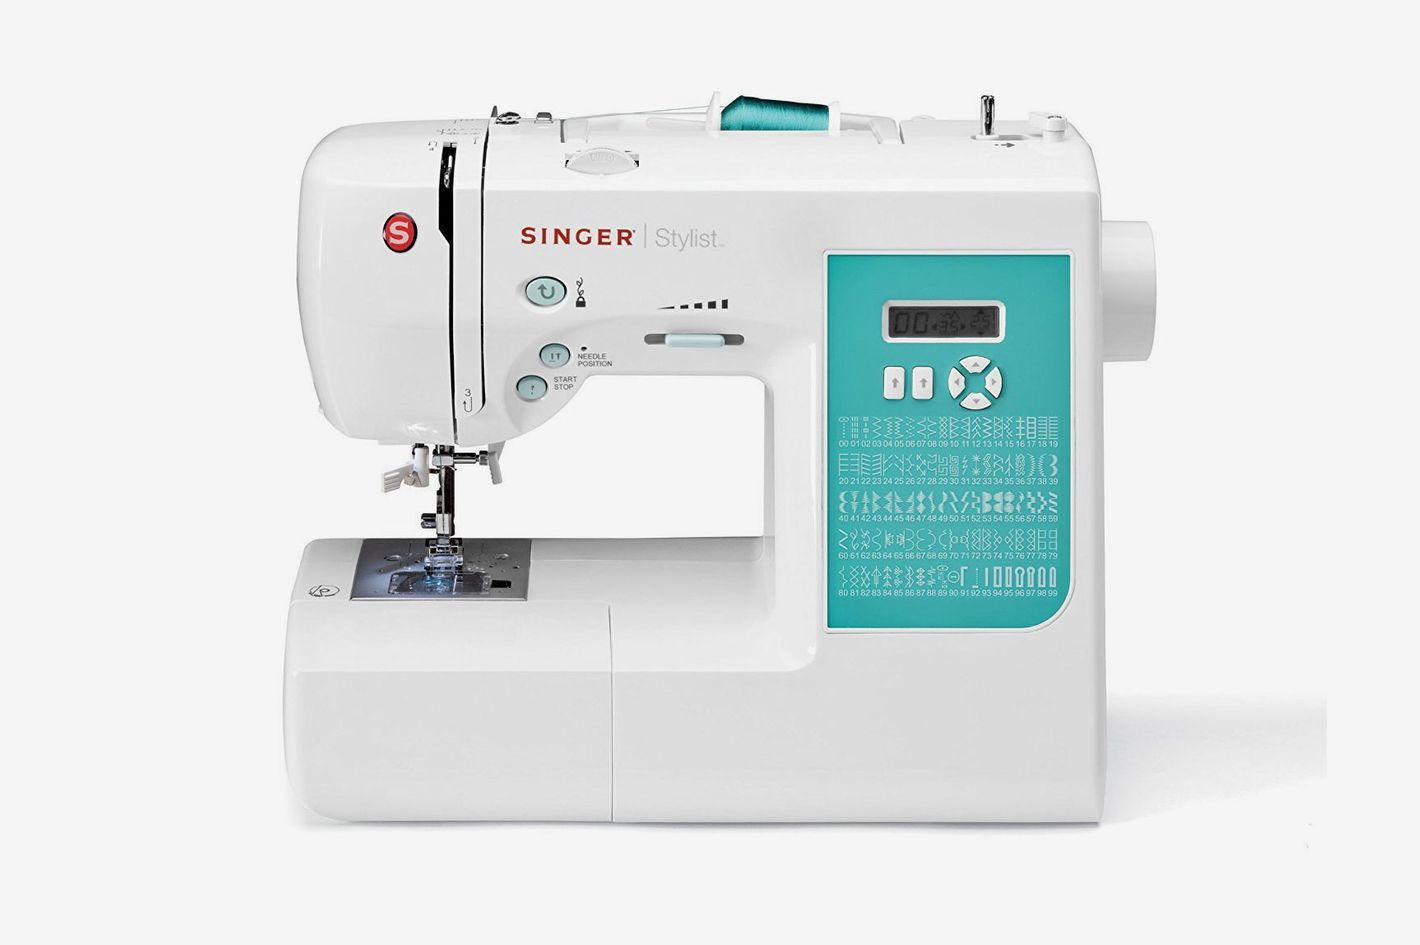 Singer Stylist 7258 100-Stitch Computerized Sewing Machine